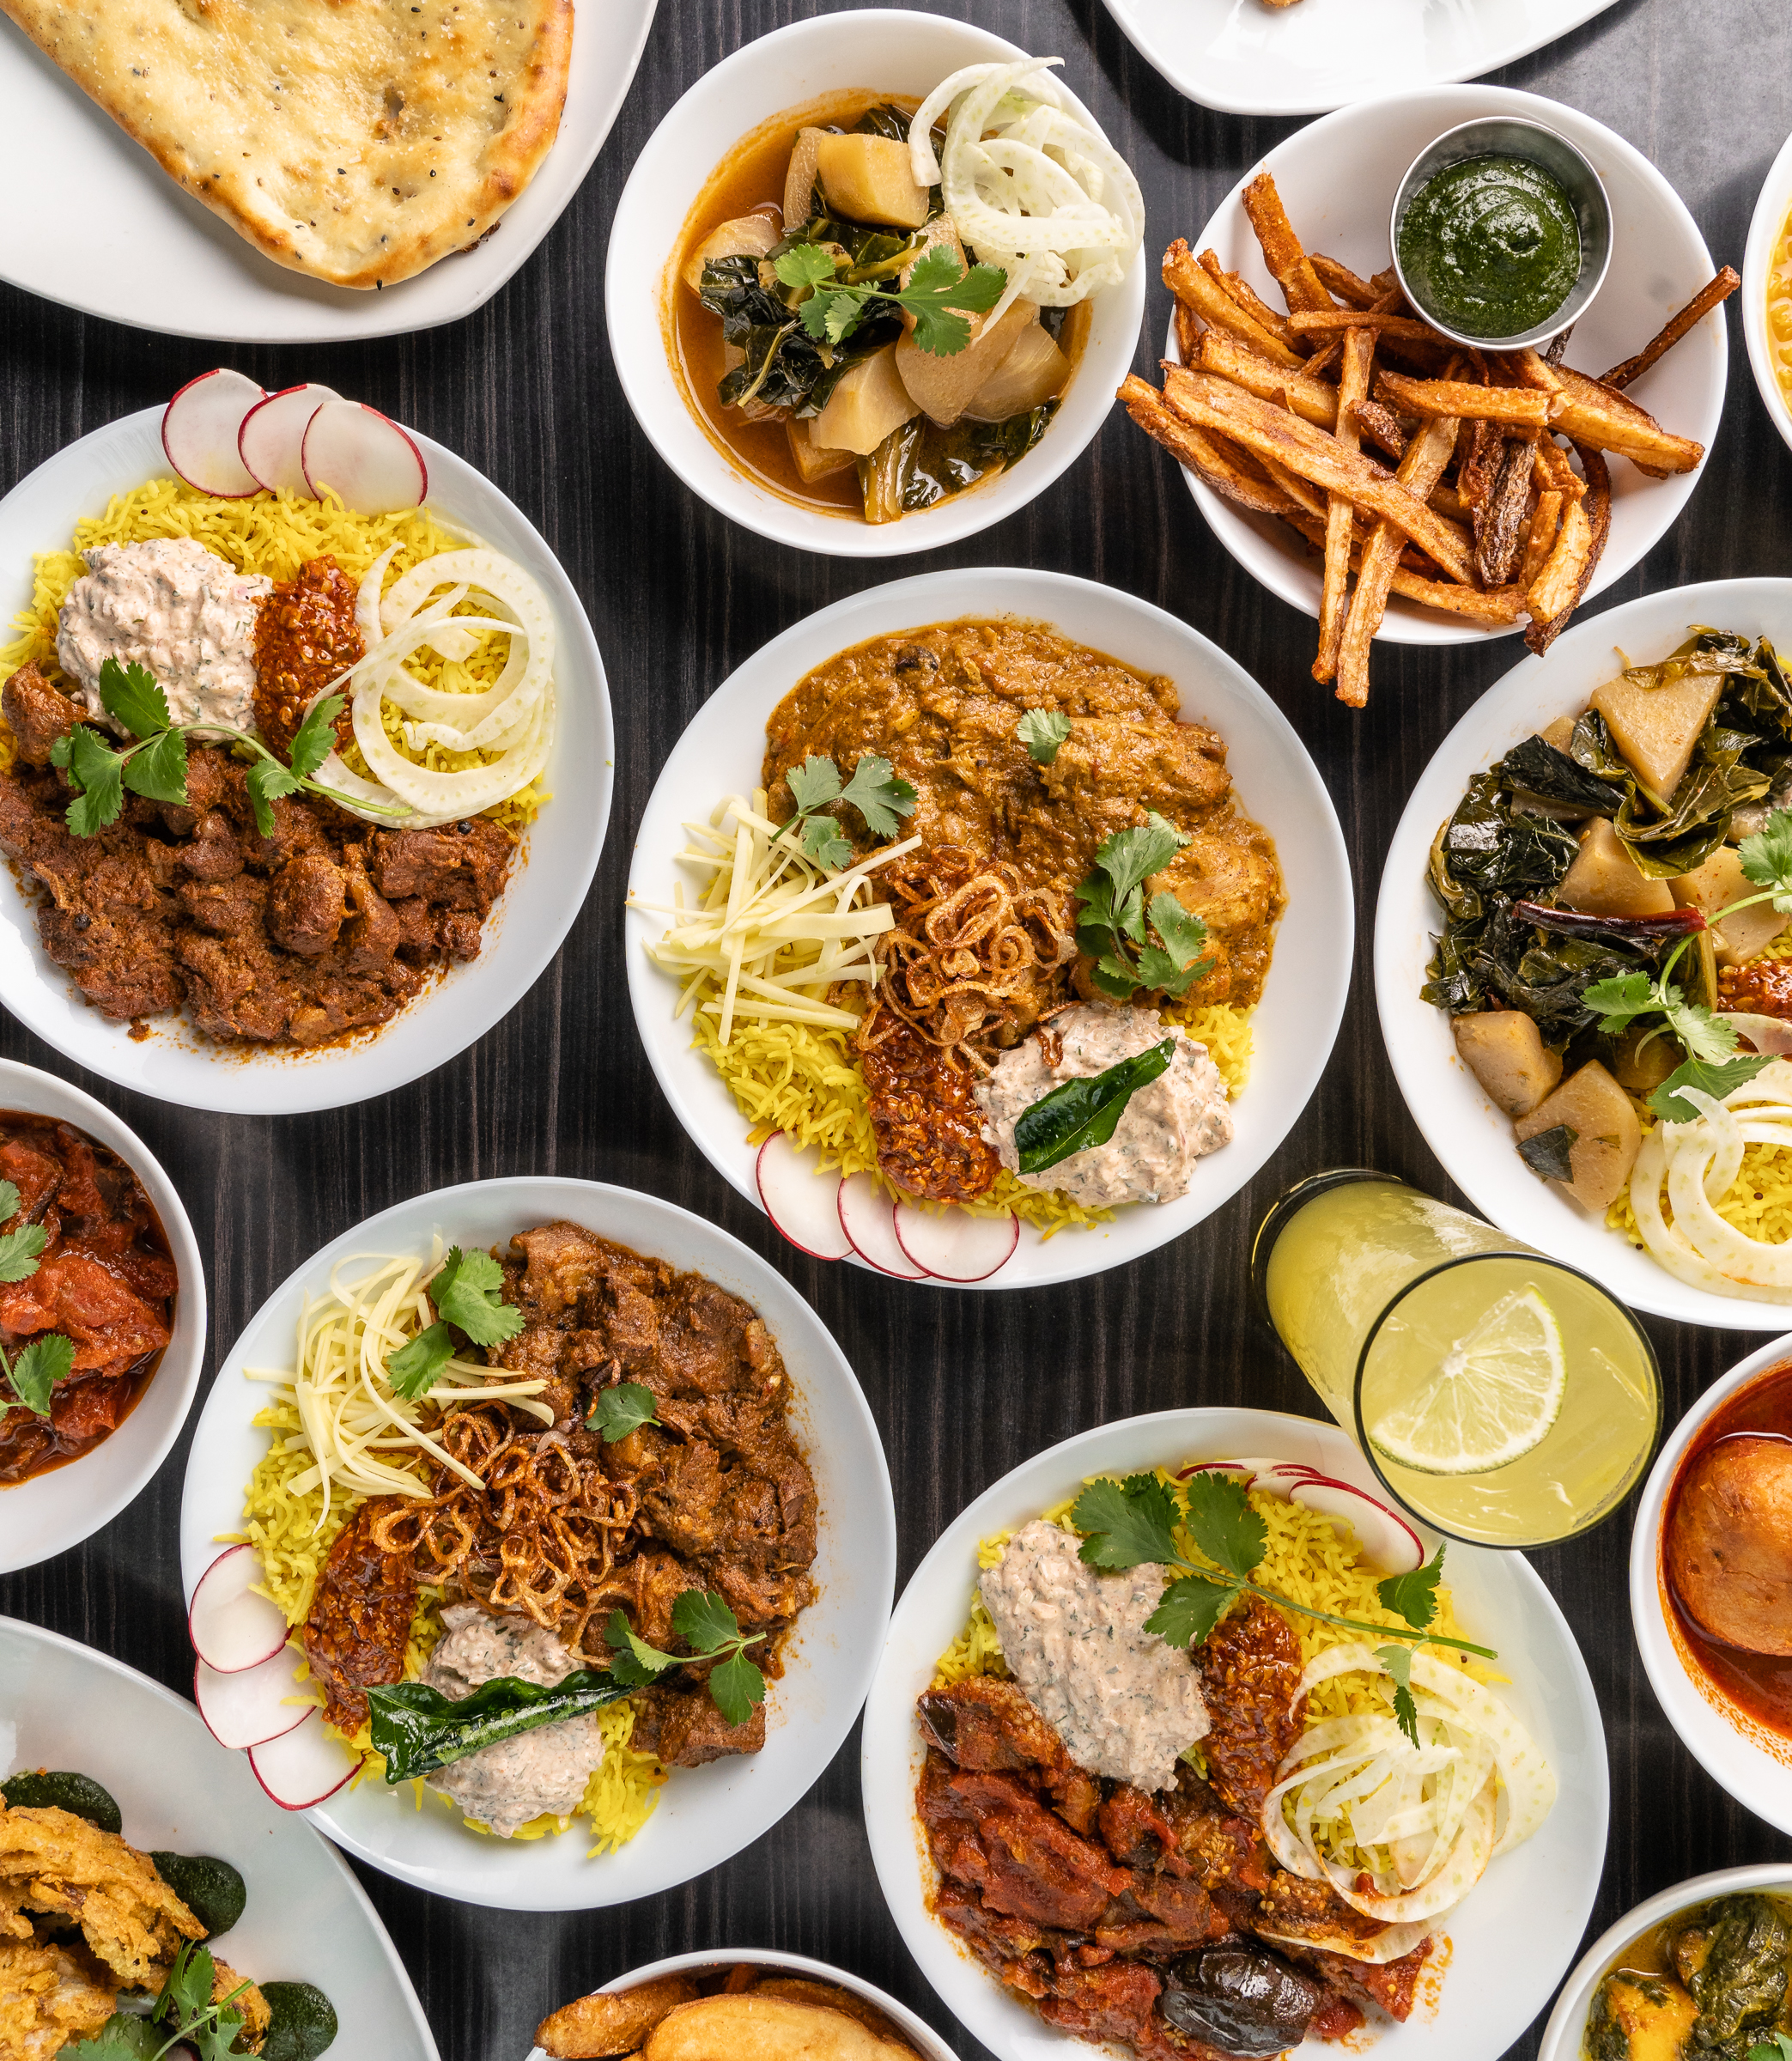 indian food portland food photography jeremy pawlowski canyon creative company for hire.jpg